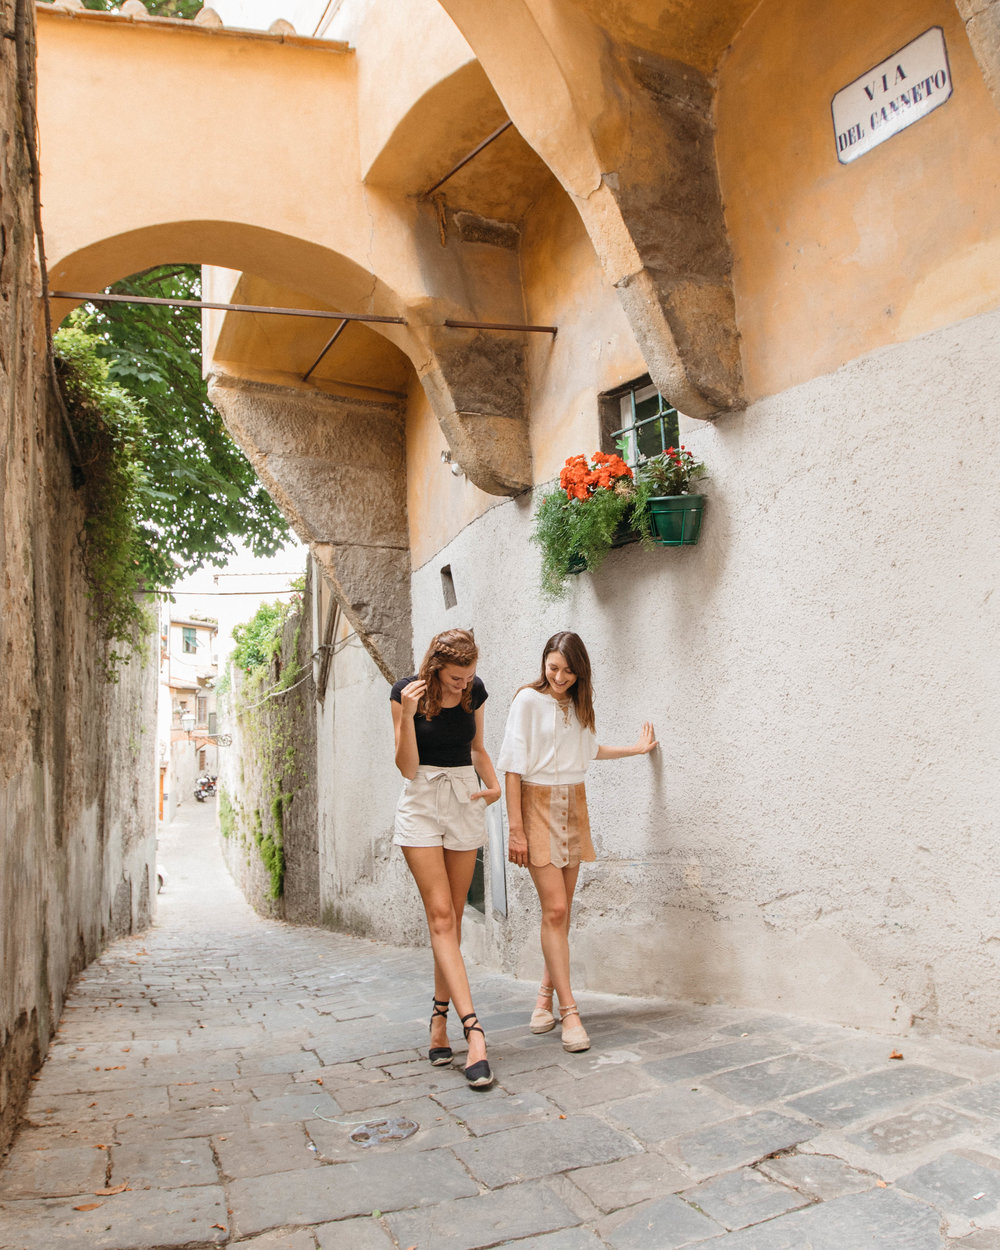 Travel blogger friends in little streets of Italy.